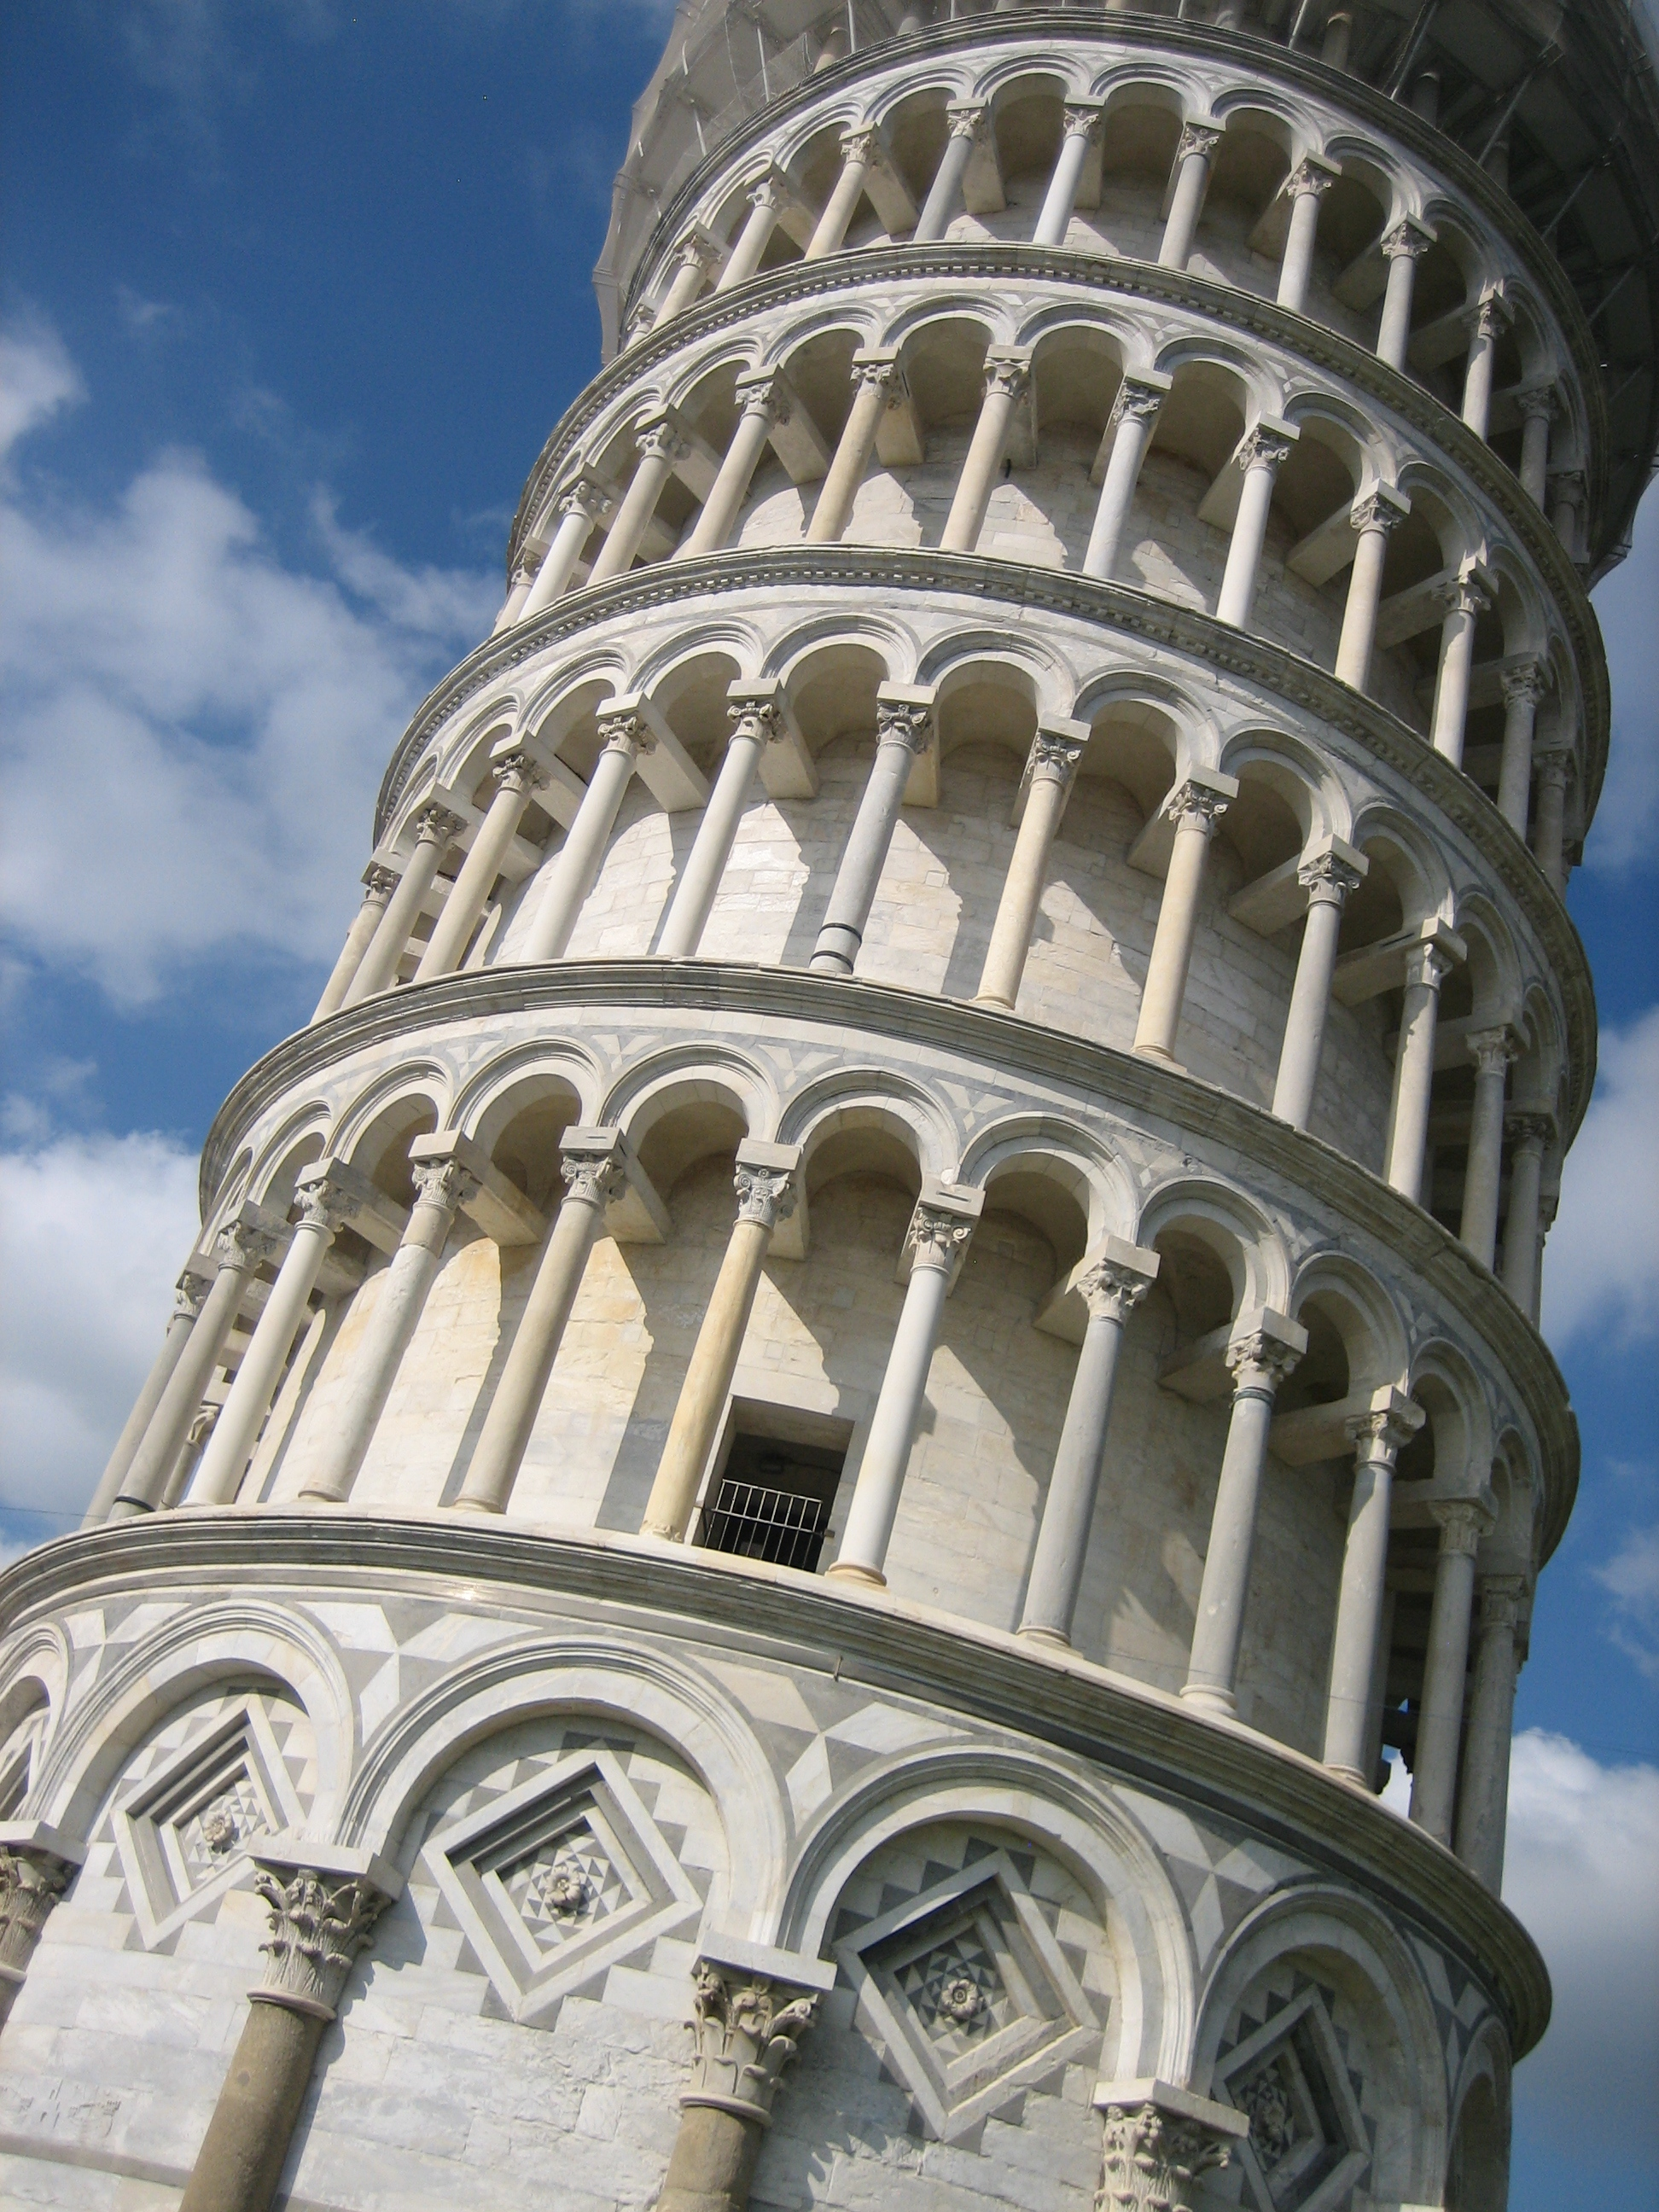 Tower Pisa Italy Pisa Italy Leaning Tower of